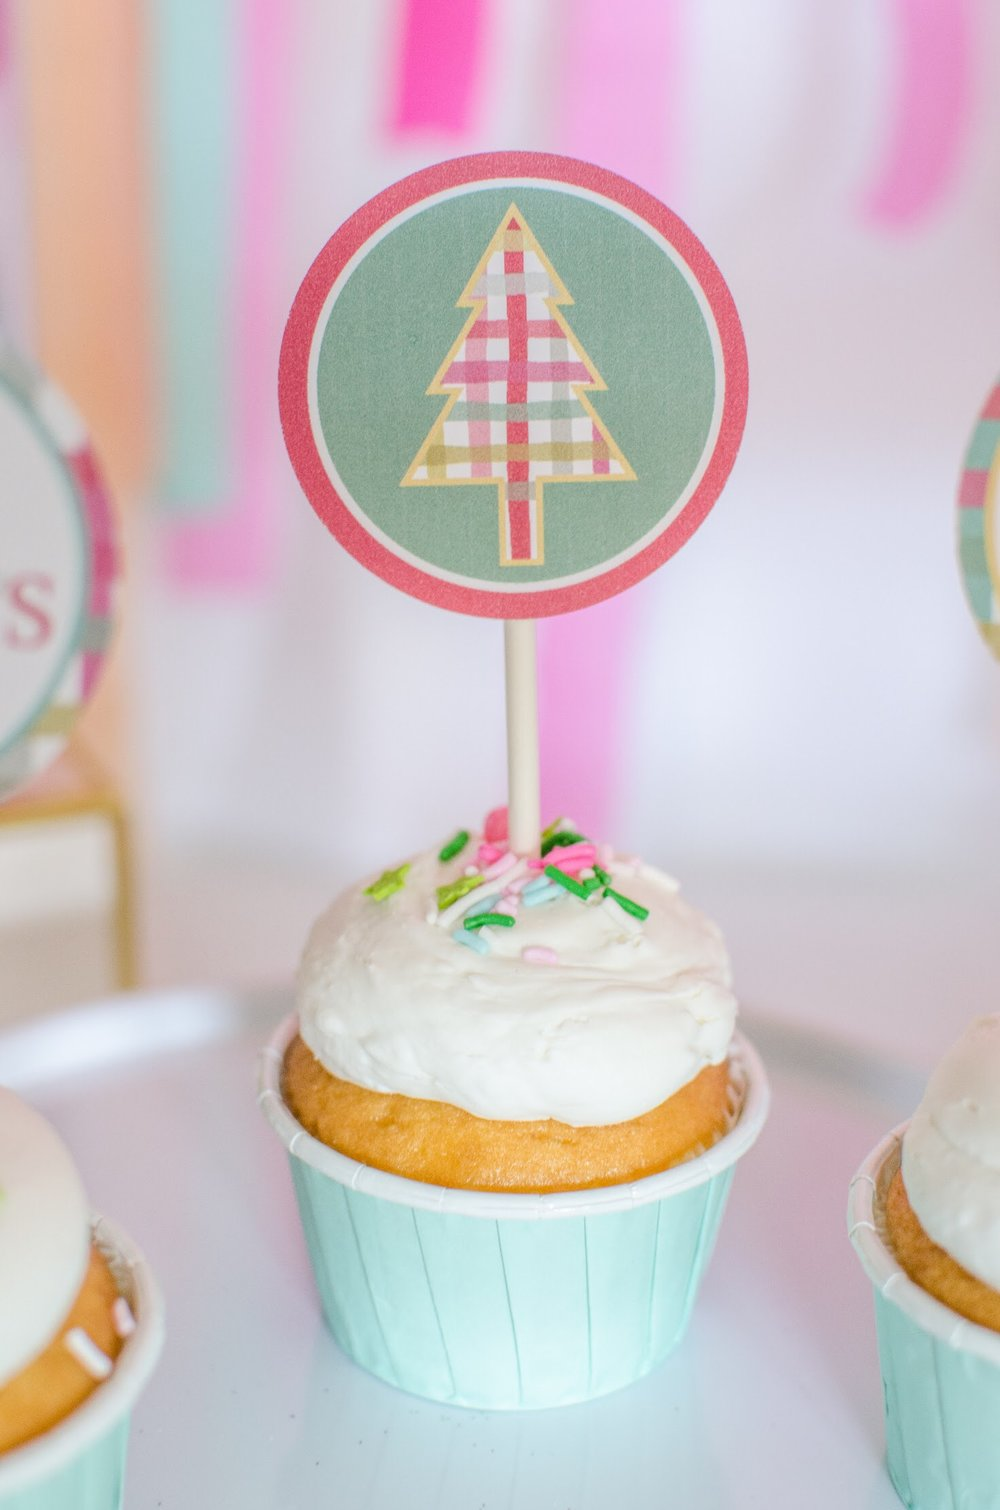 Sweet Christmas cupcakes and a free cupcake topper printable. See more from this llama Christmas party at www.minteventdesign.com and download your free printables #holidayparty #partyideas #christmasparty #holidaypartyideas #llamaparty #llamalove #partyprintables #freeprintables